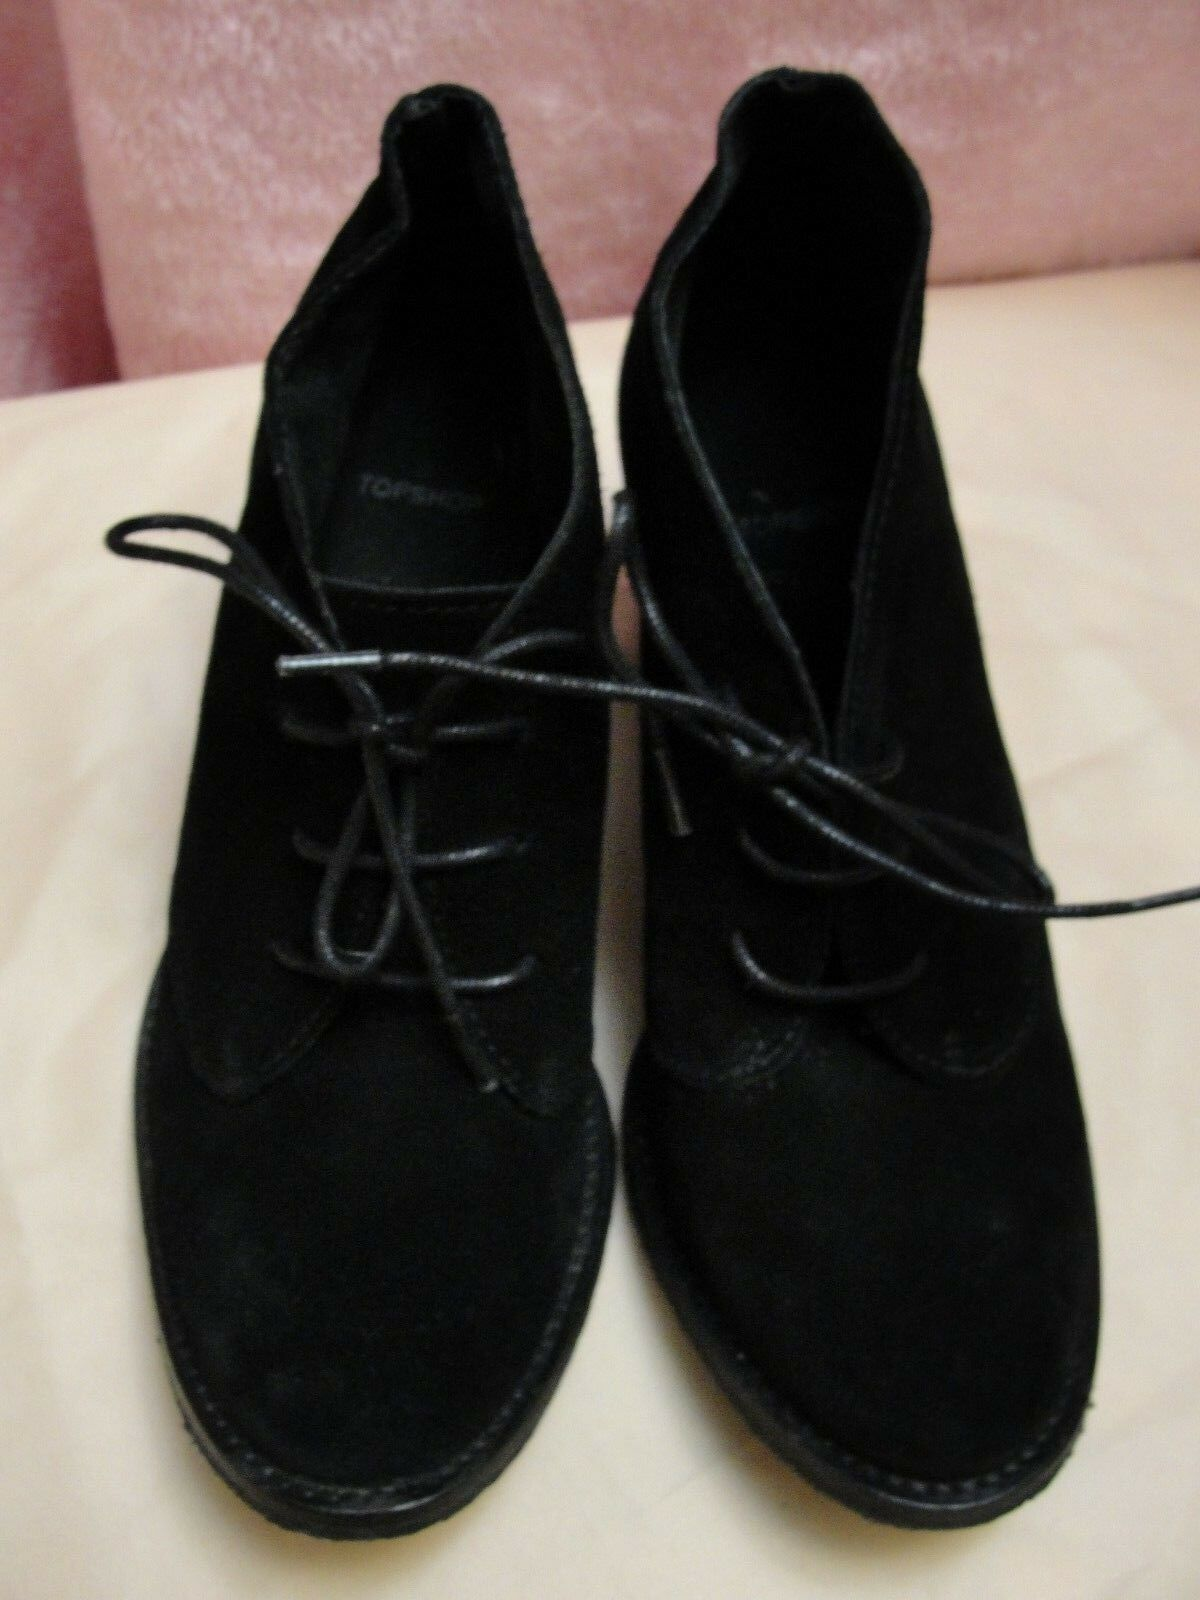 Topshop Suede Leather boots - size eur 37